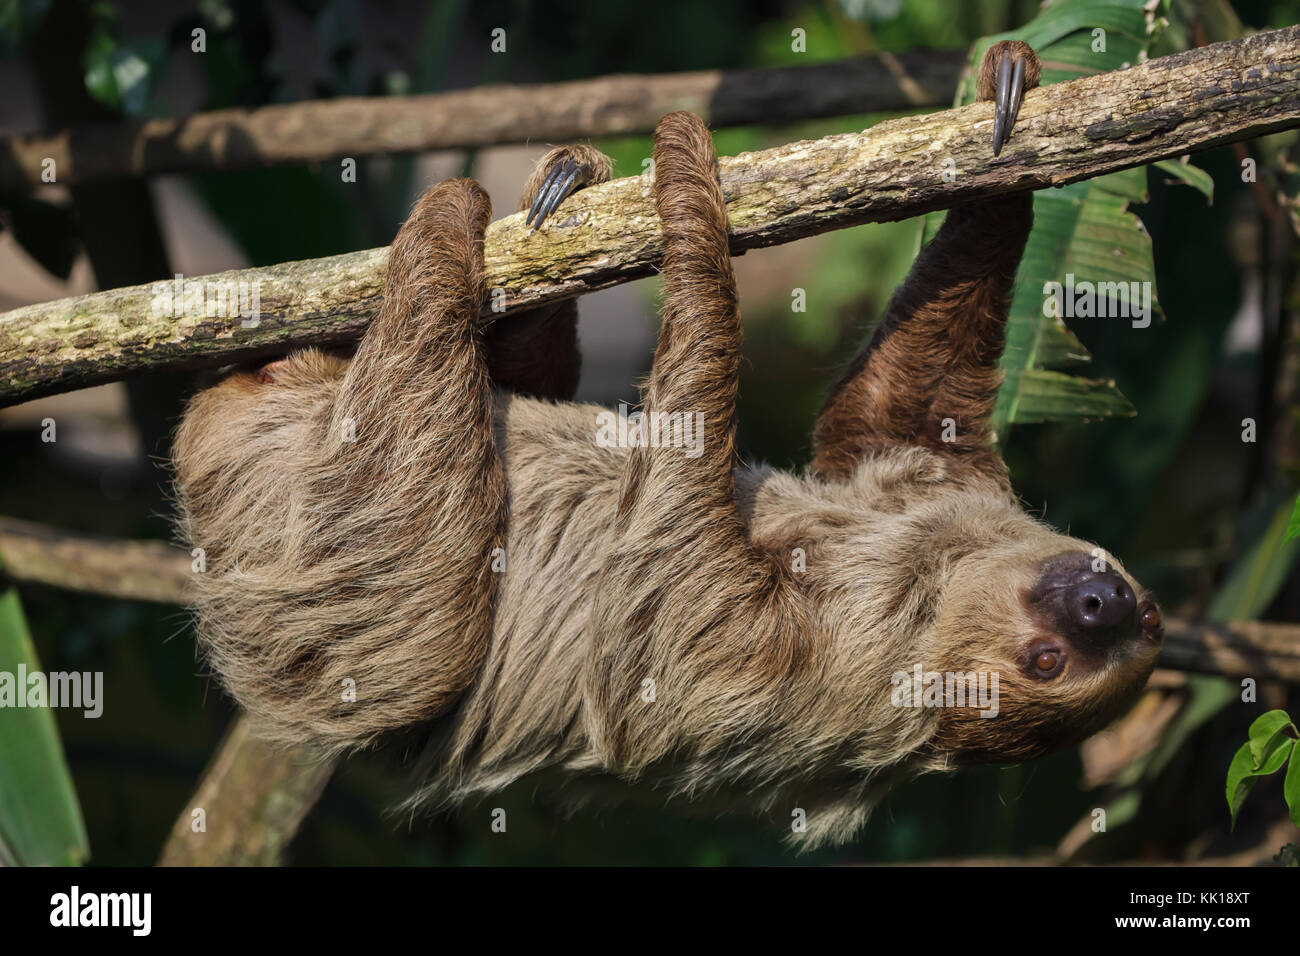 Linnaeus's two-toed sloth (Choloepus didactylus), also known as the southern two-toed sloth. Stock Photo